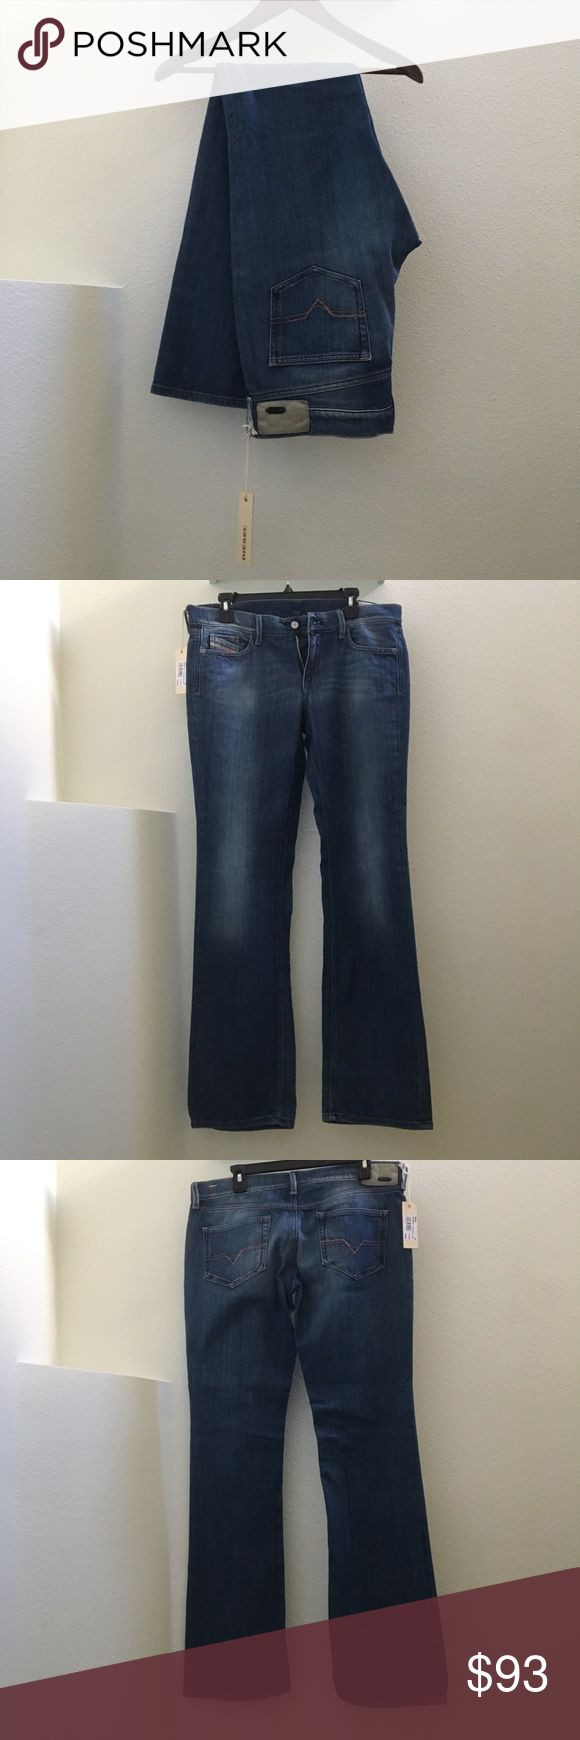 """NWT Diesel women's denim NO TRADES!   NWT Diesel women jeans size 31 x 34"""" Long. Straight leg. Brand new with tags and have never been worn or washed. Price is FIRM unless bundled   Smoke/pet free home, all sales final.   I have zero control of shipping once in the hands of USPS. Diesel Jeans Straight Leg"""